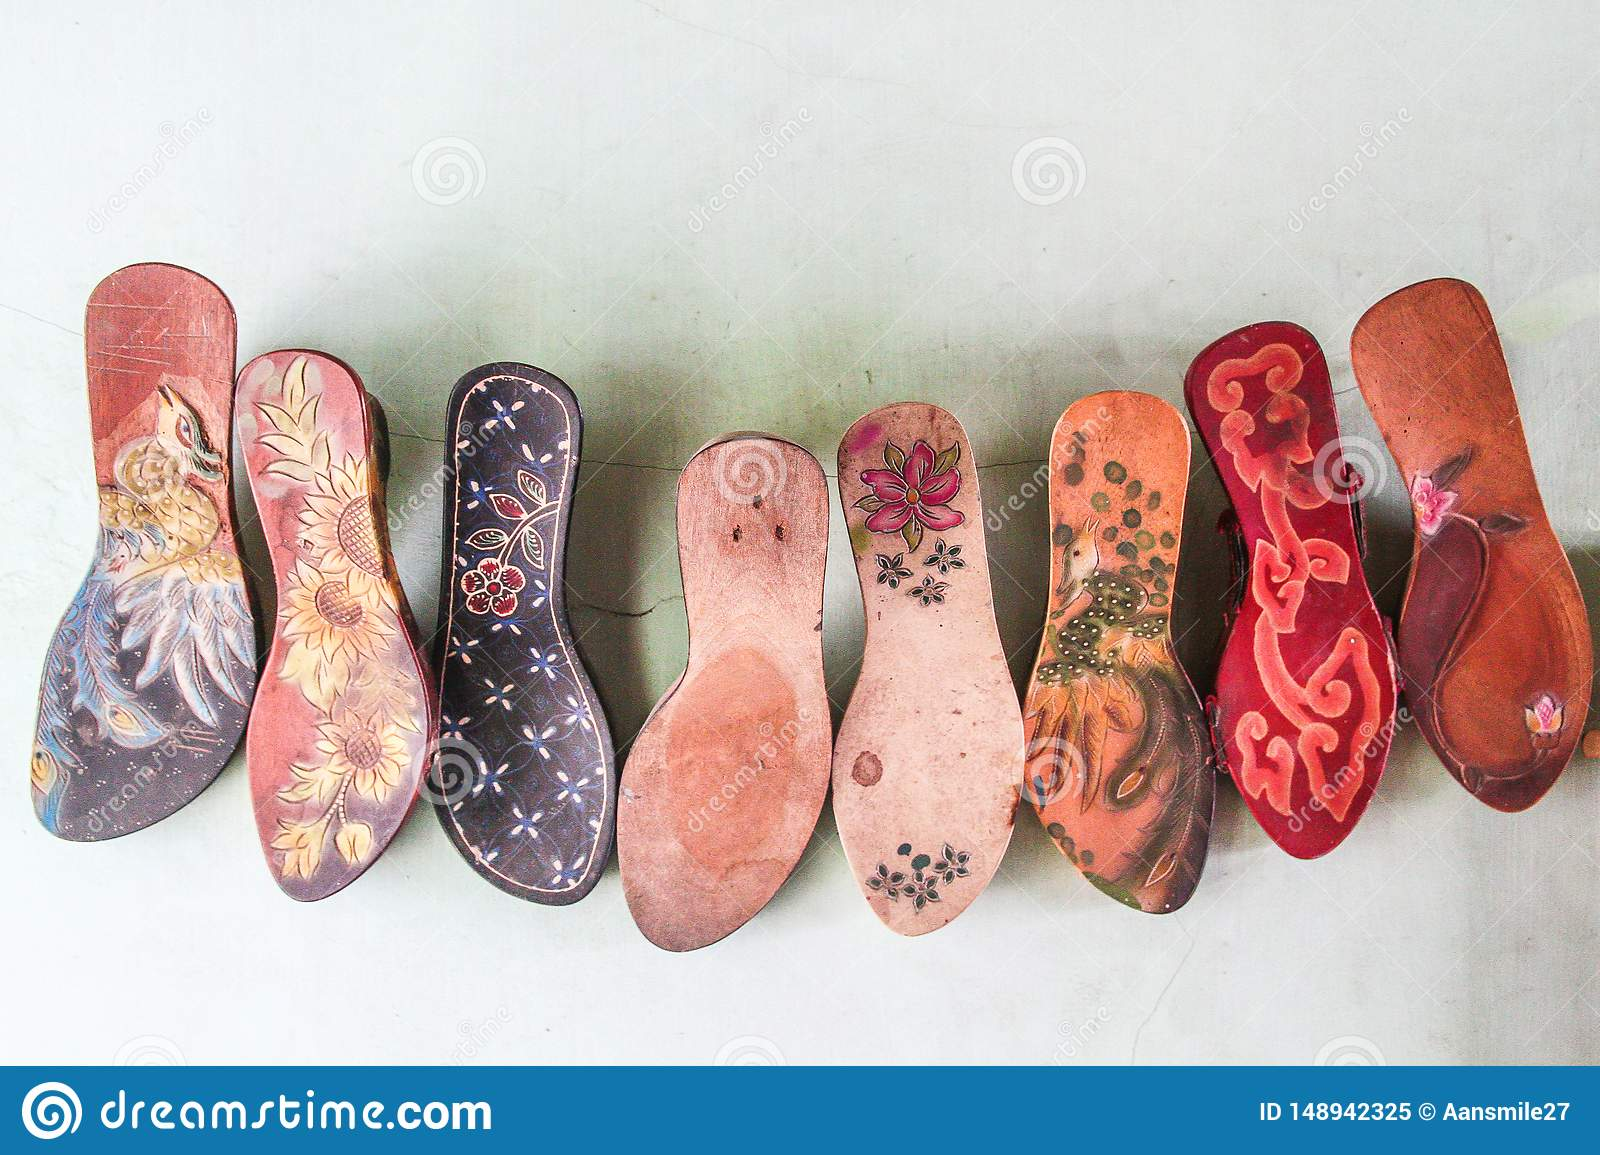 Asian traditional painted wooden shoe soles